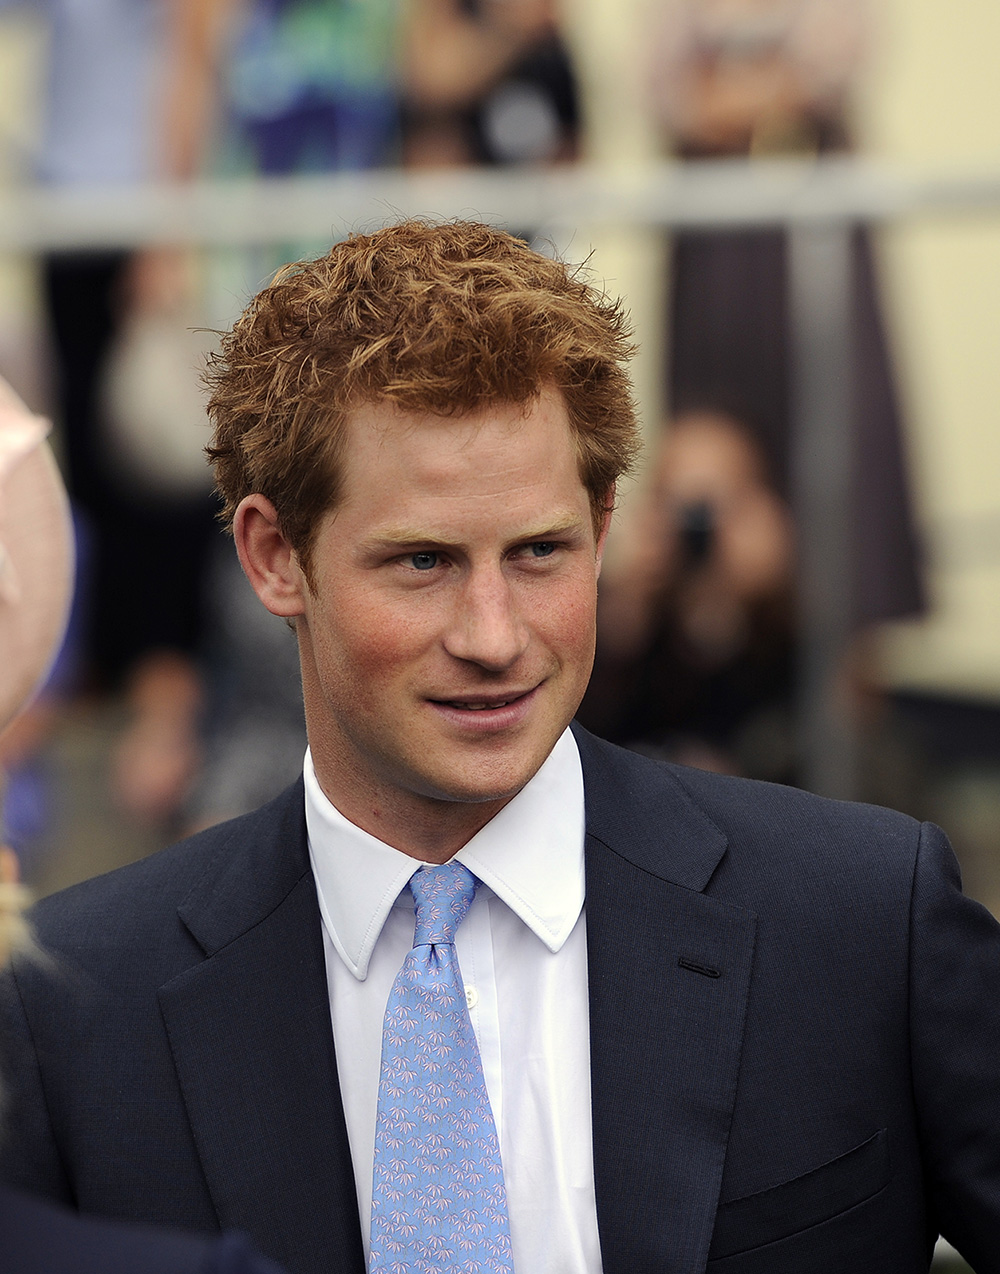 Le prince Harry (Son Altesse Royale le duc de Sussex)